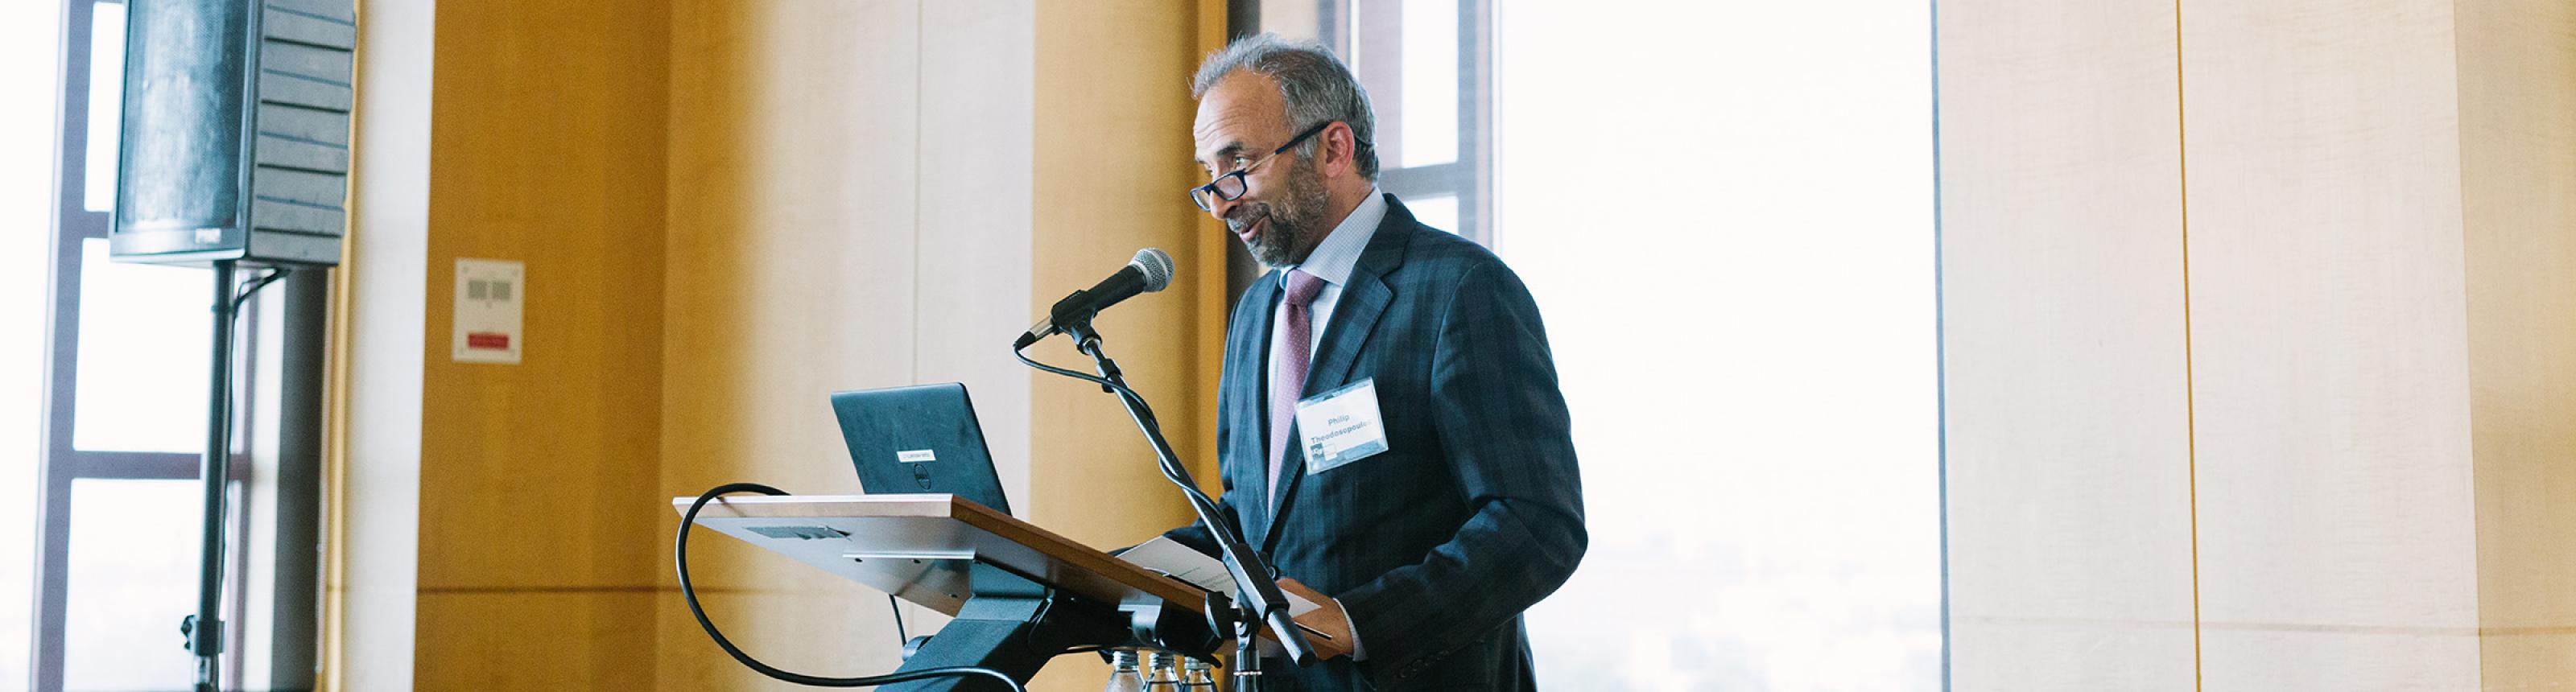 UCSF neurosurgeon Philip Theodosopoulos gives a speech